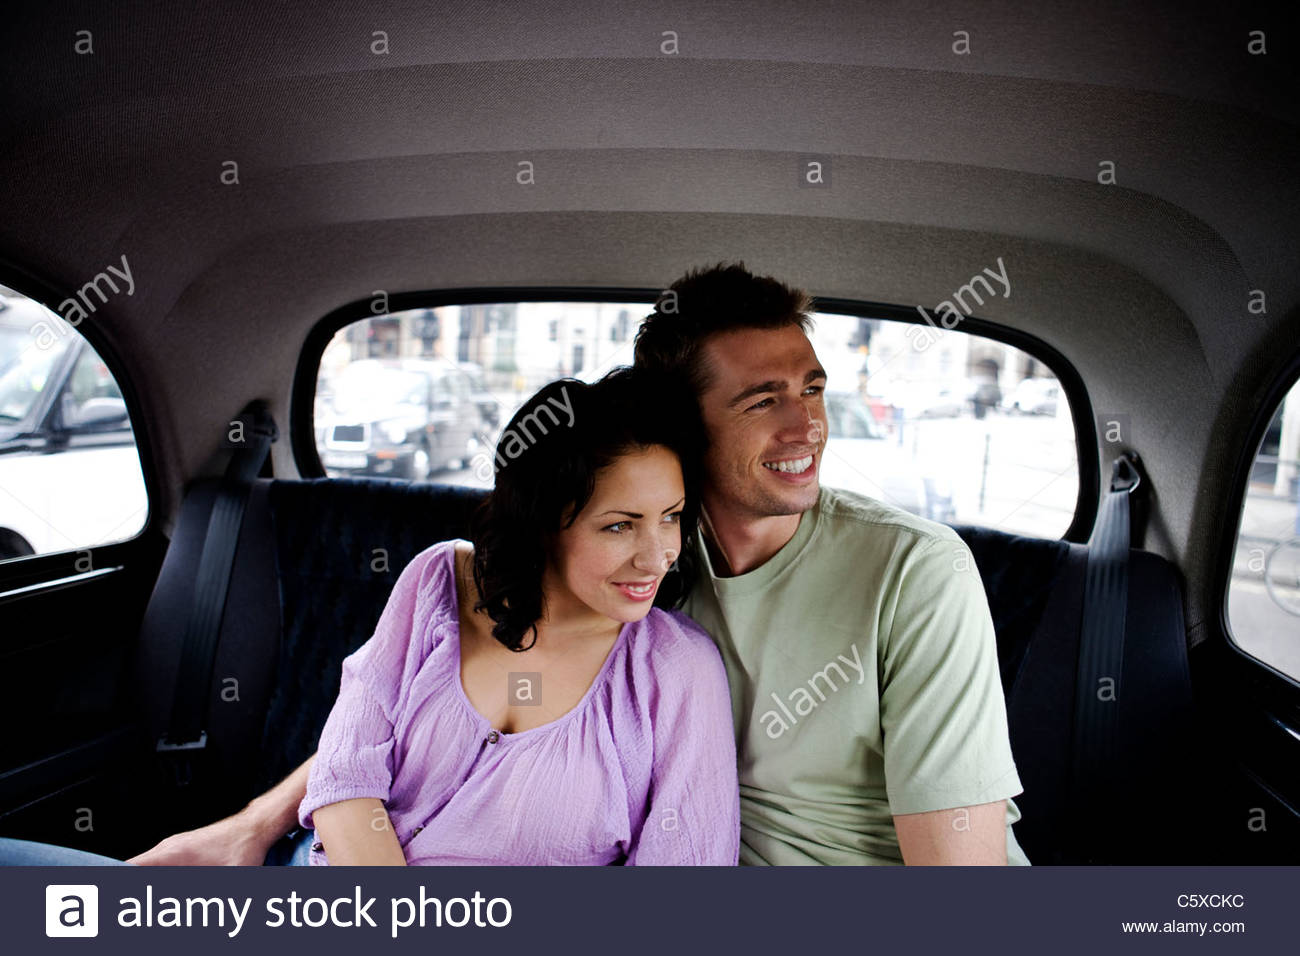 A young couple in a London taxi, admiring the view - Stock Image